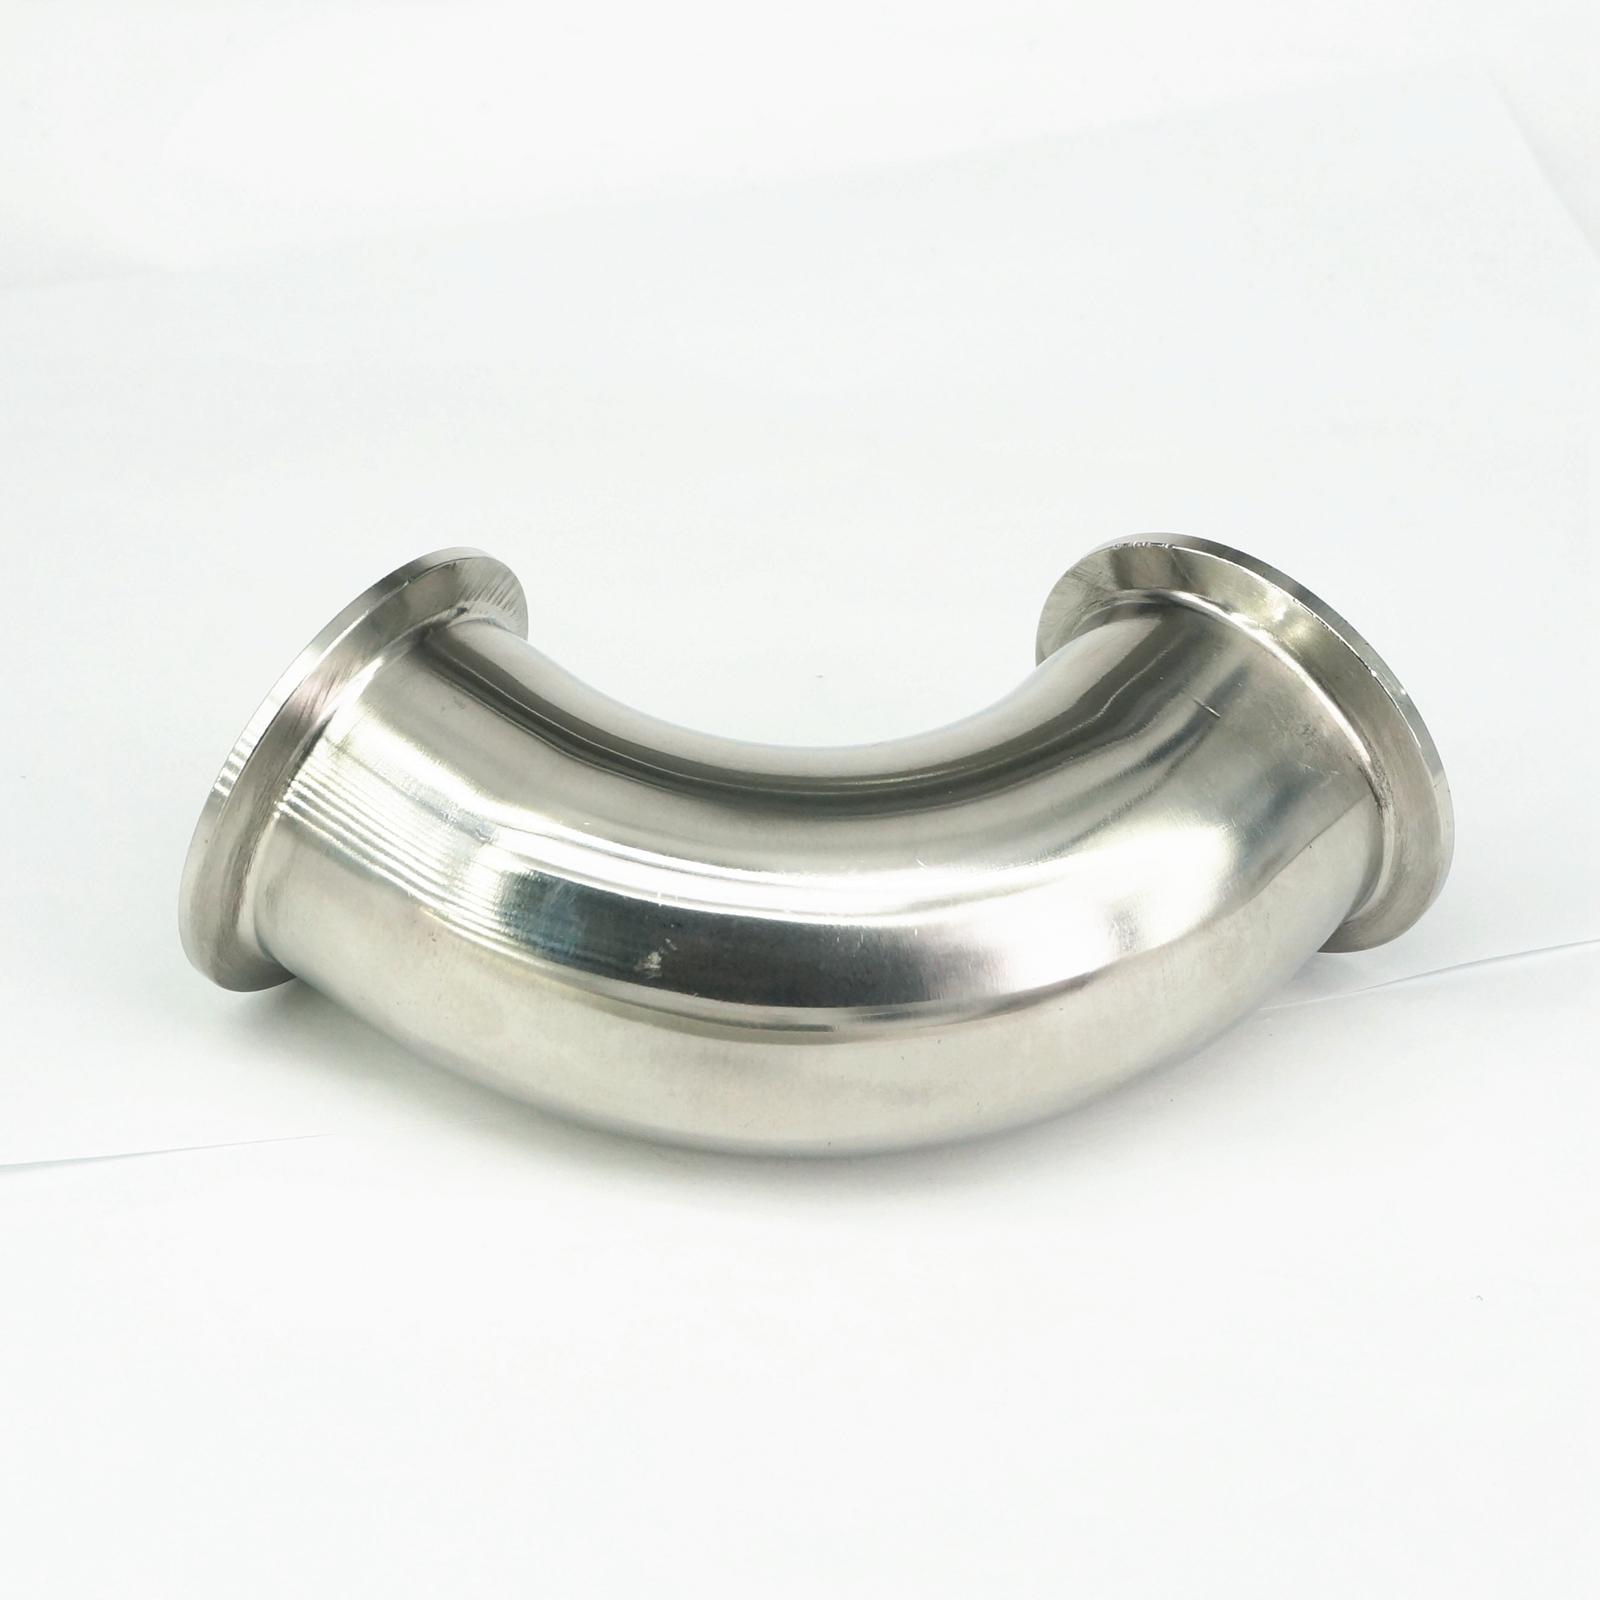 2 Tri Clamp Sanitary 90 Degree Elbow 51mm Pipe OD 304 Stainless Steel Fitting 64mm Feerule OD For Homebrew 1 2 bsp male x 1 5 tri clamp 304 stainless steel pipe fitting connector for homebrew with hex nut